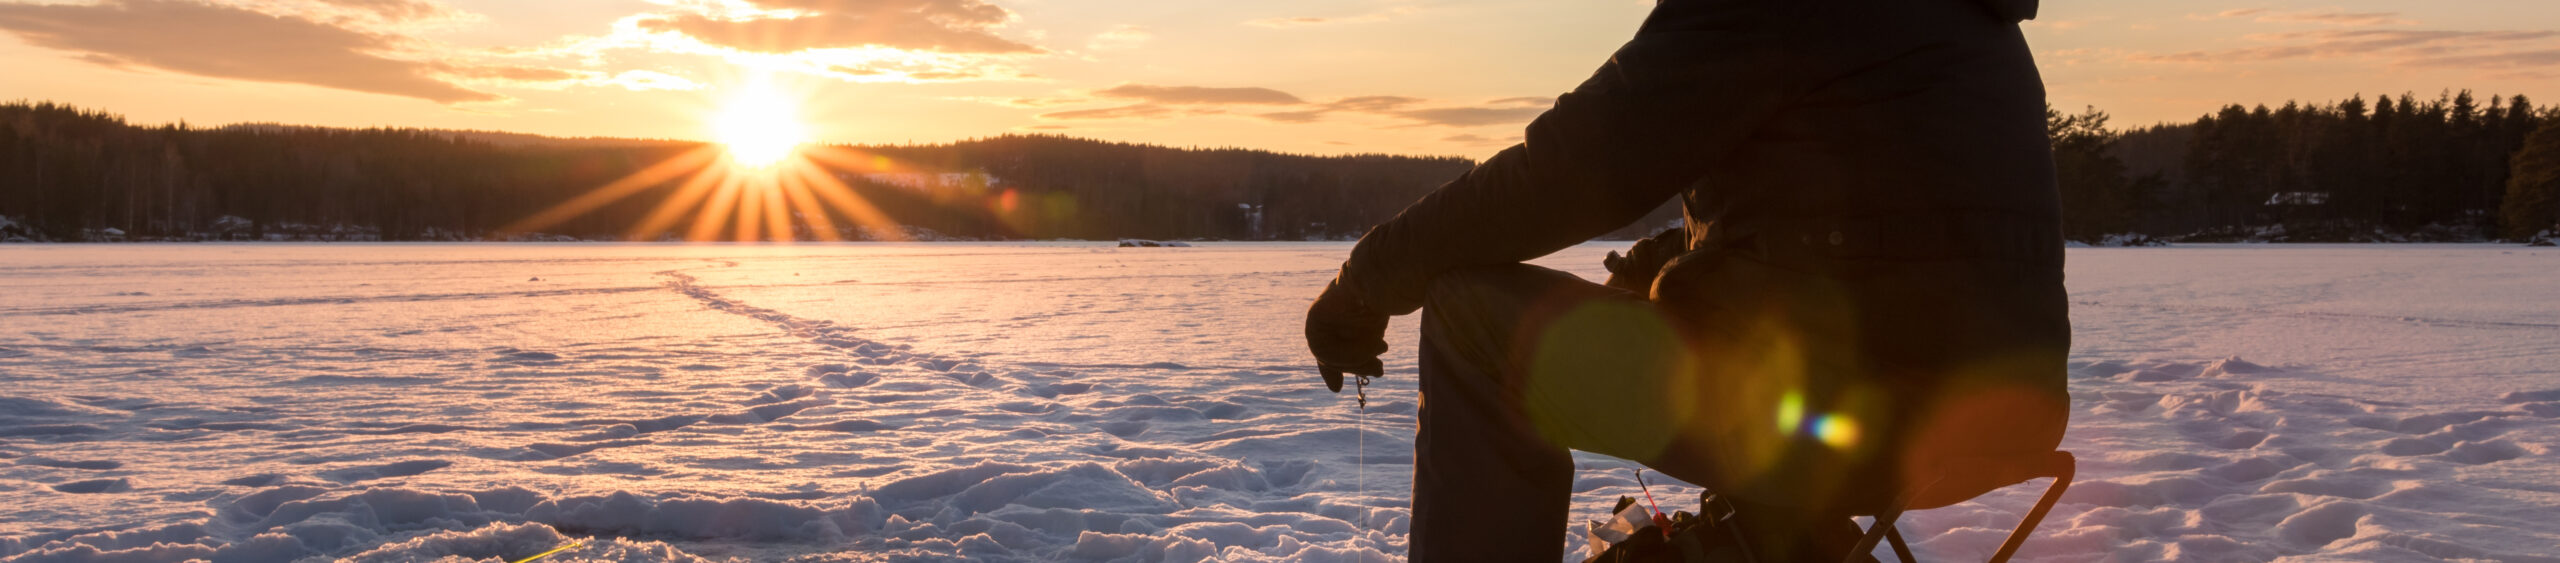 Ice Fishing On Lake